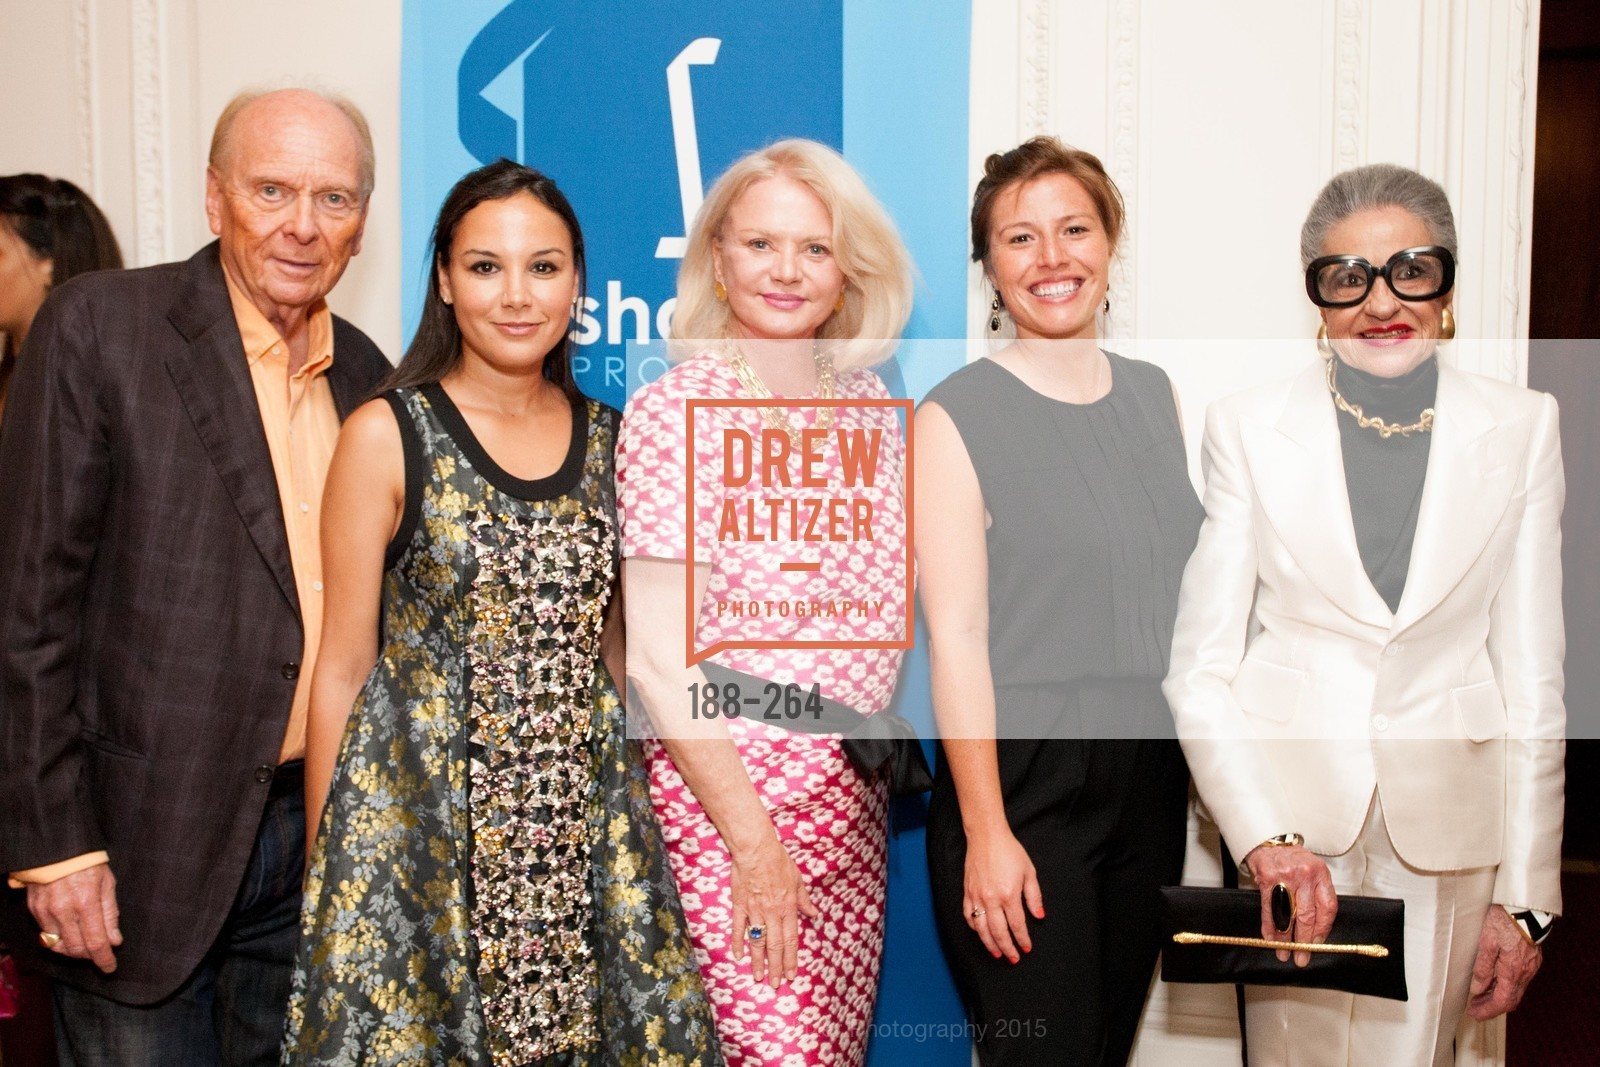 David Pace, Bahya Oumil-Murad, Heide Betz, Lauren Villa, Joy Venturini Bianchi, Shanti's Compassion is Universal 41st Anniversary Preview Reception, Palace Hotel. 2 Montgomery Street, August 25th, 2015,Drew Altizer, Drew Altizer Photography, full-service agency, private events, San Francisco photographer, photographer california